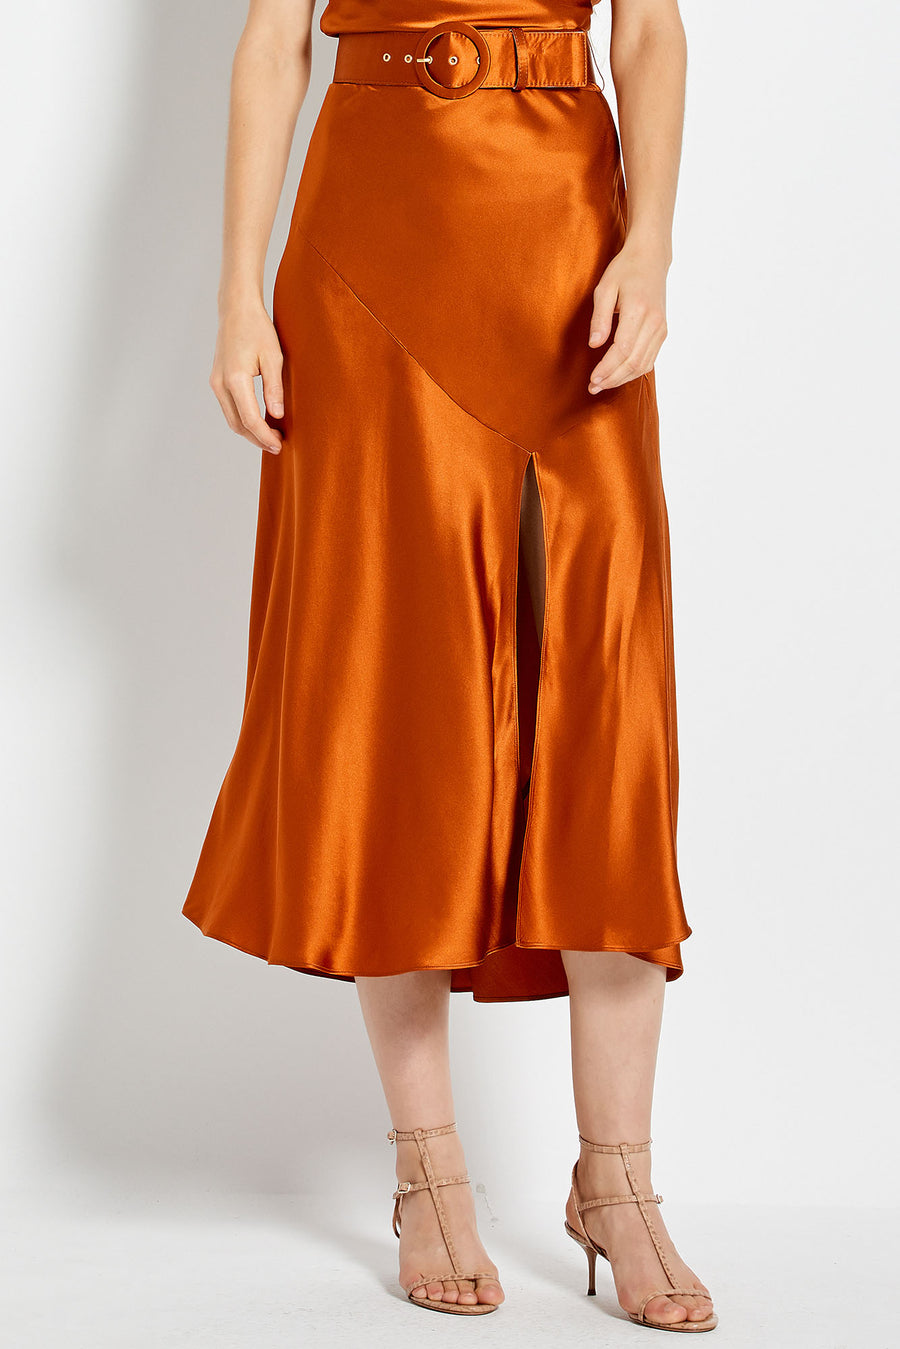 Simonetta Skirt - Copper